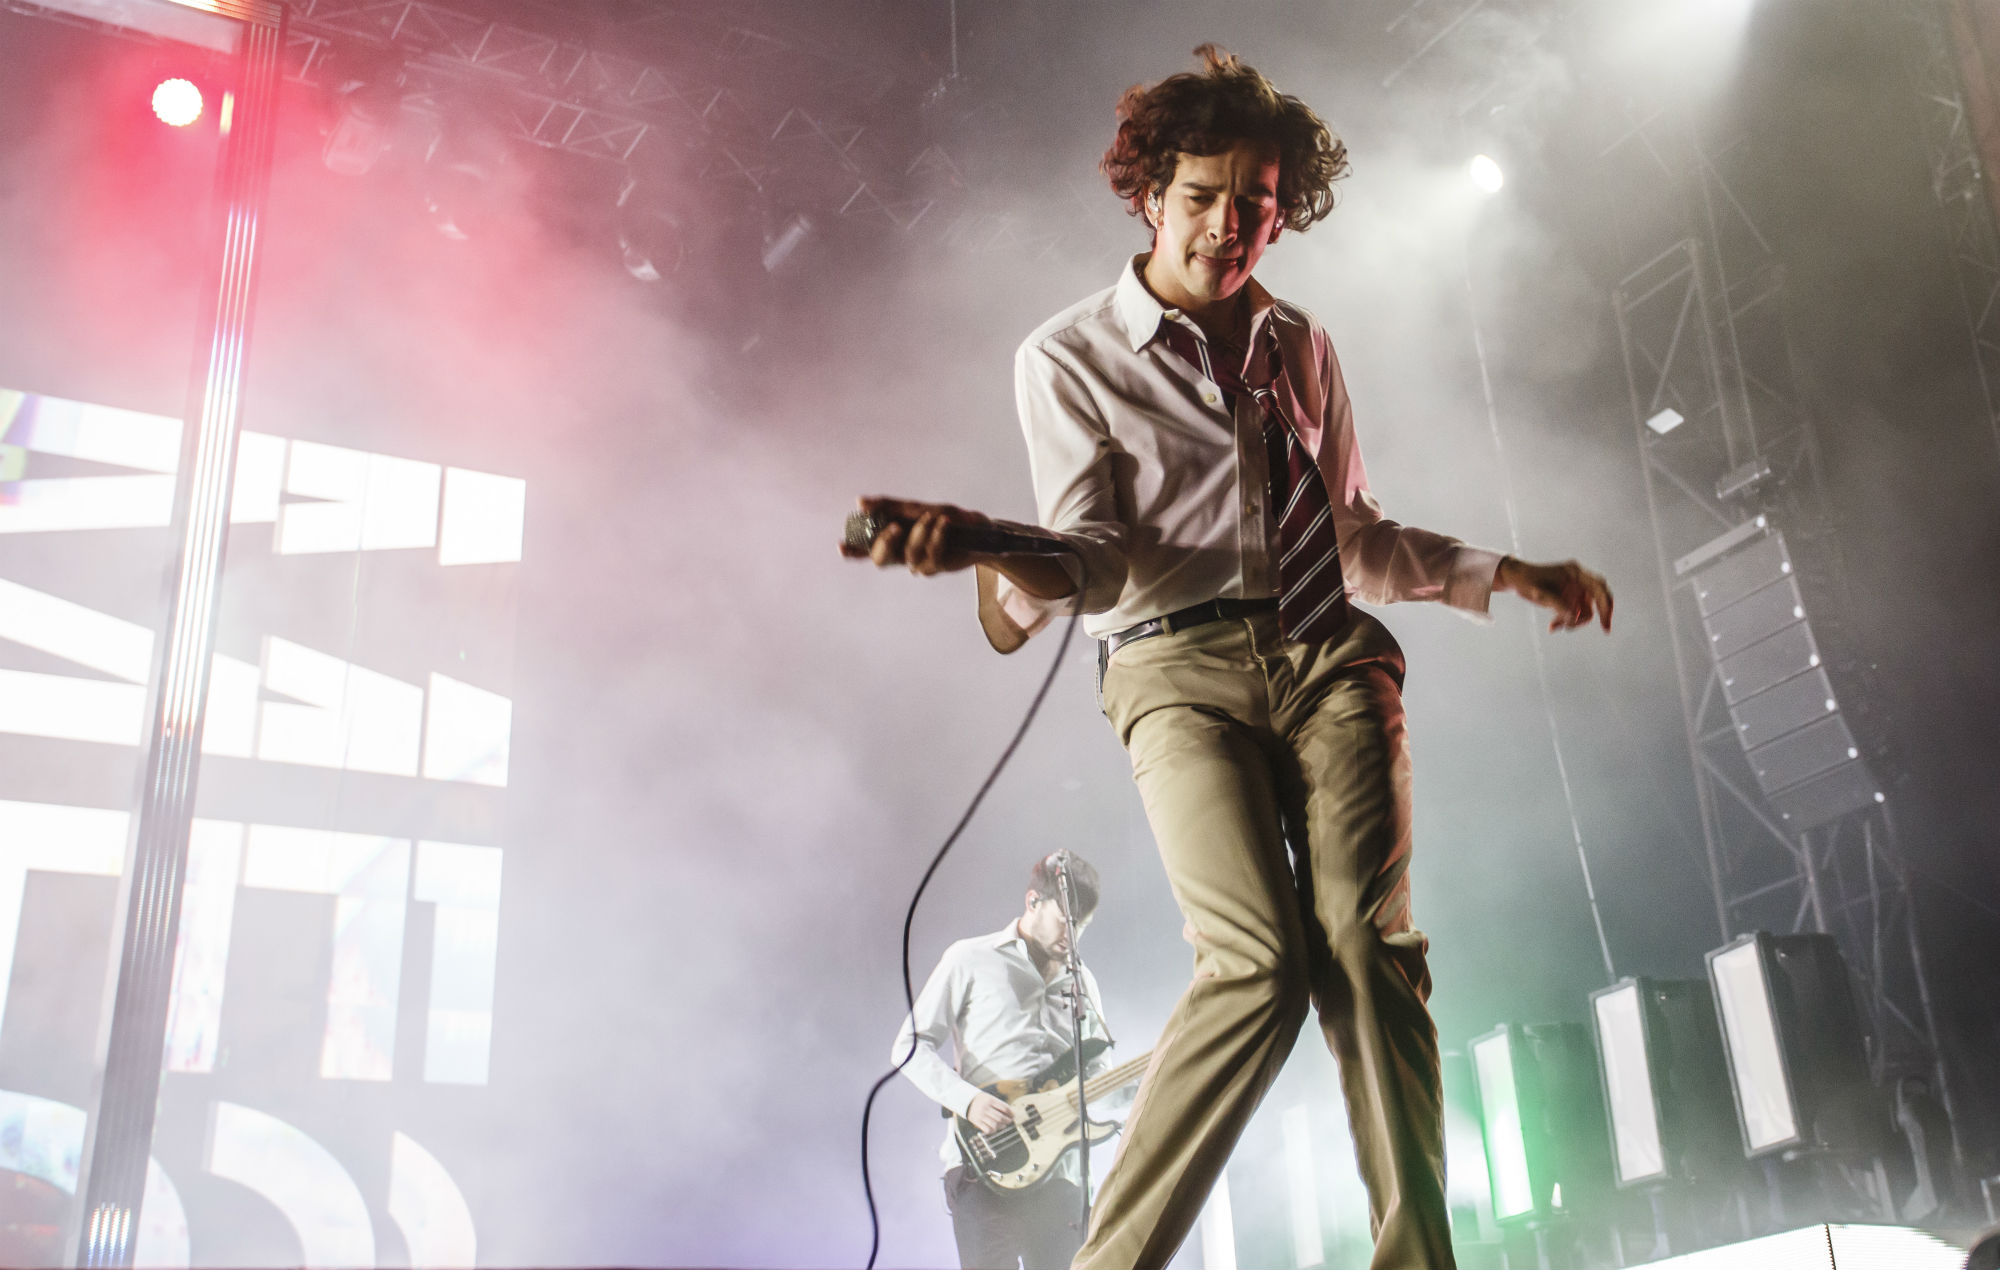 United We Rock Tour 2020  July 1 New The 1975 album 'Notes On A Conditional Form' – everything we